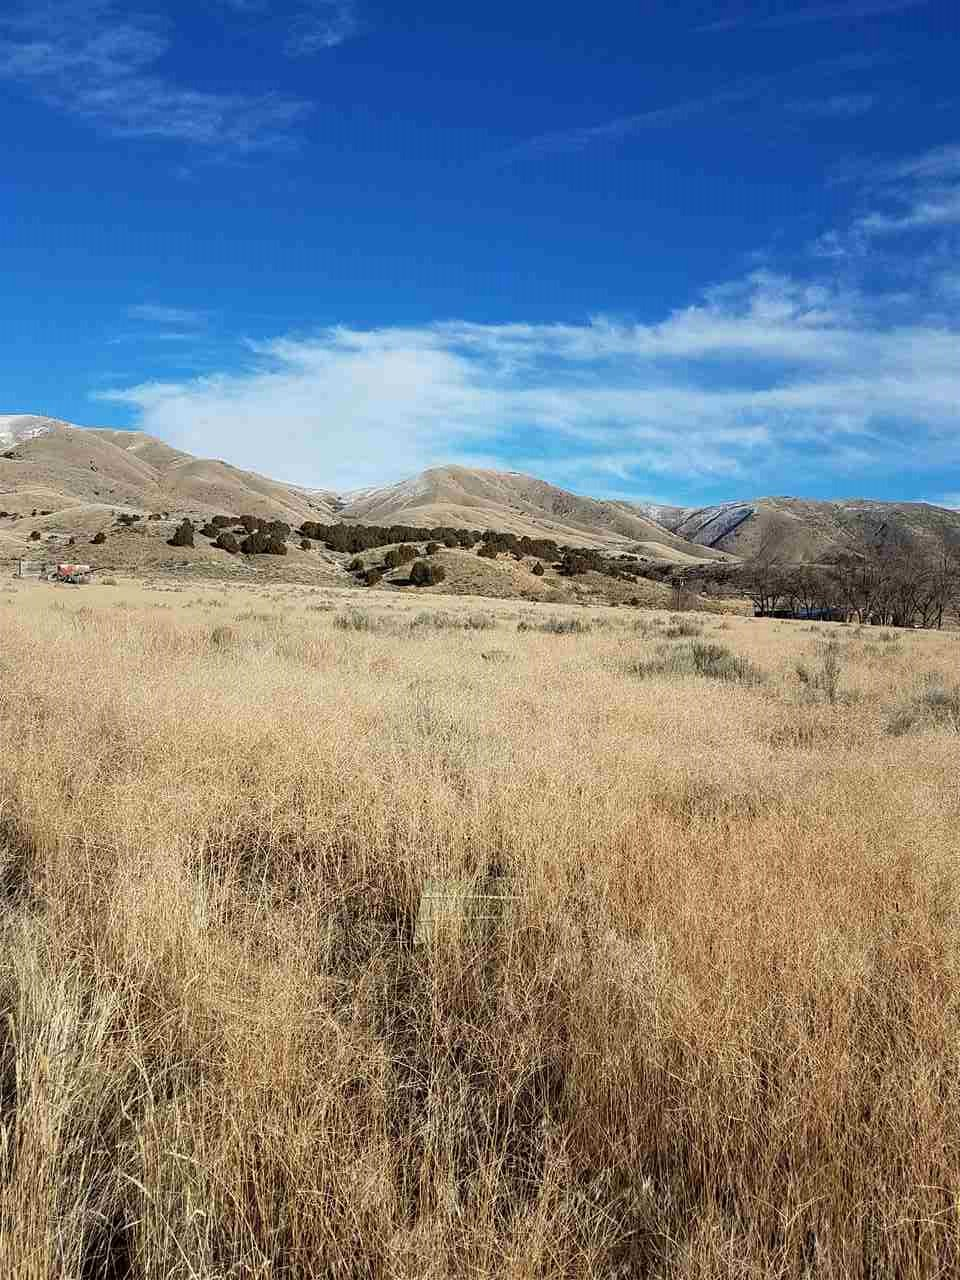 231 ACRES S 5TH Property Photo - Pocatello, ID real estate listing